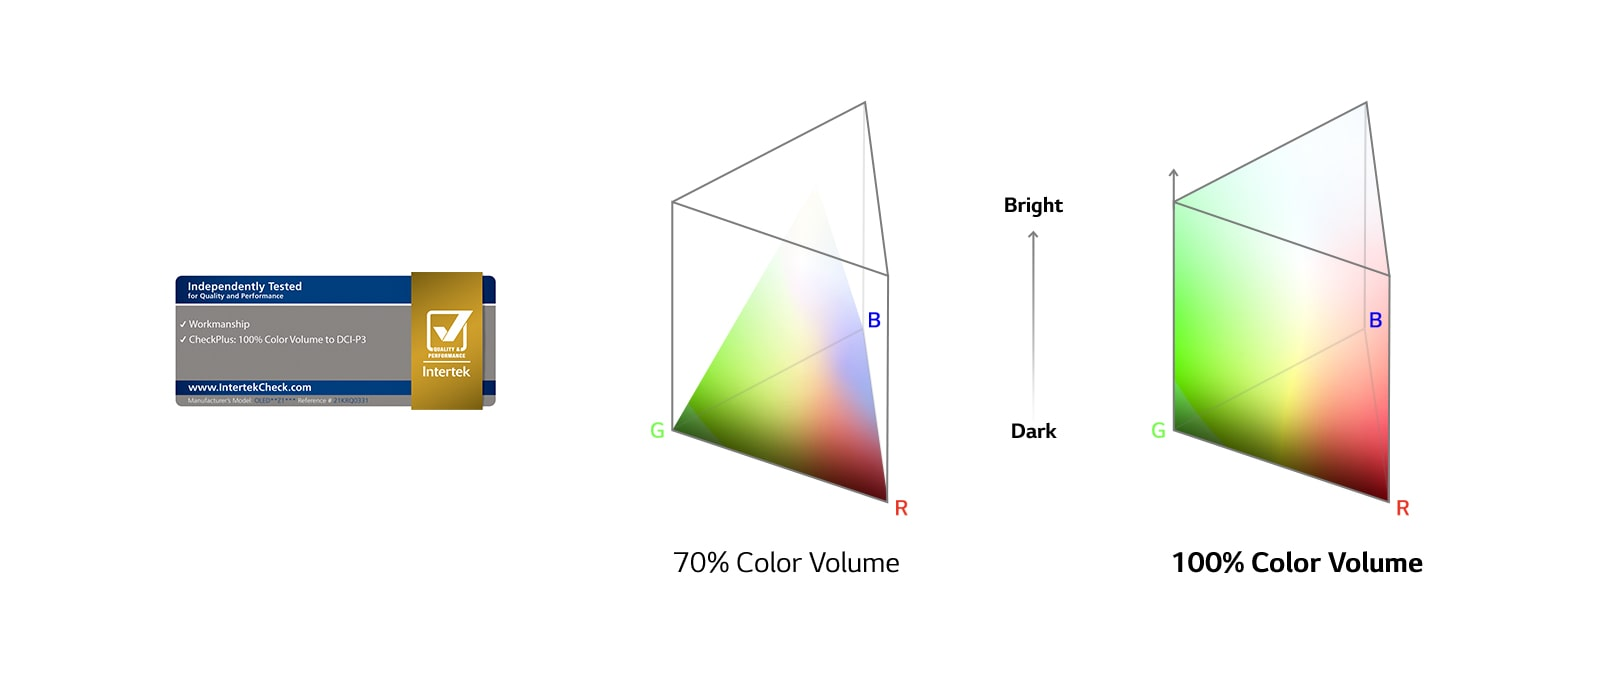 A 100% Color Volume logo certified by Intertek. A comparison graph between 70% Color Volume and 100% Color Volume.